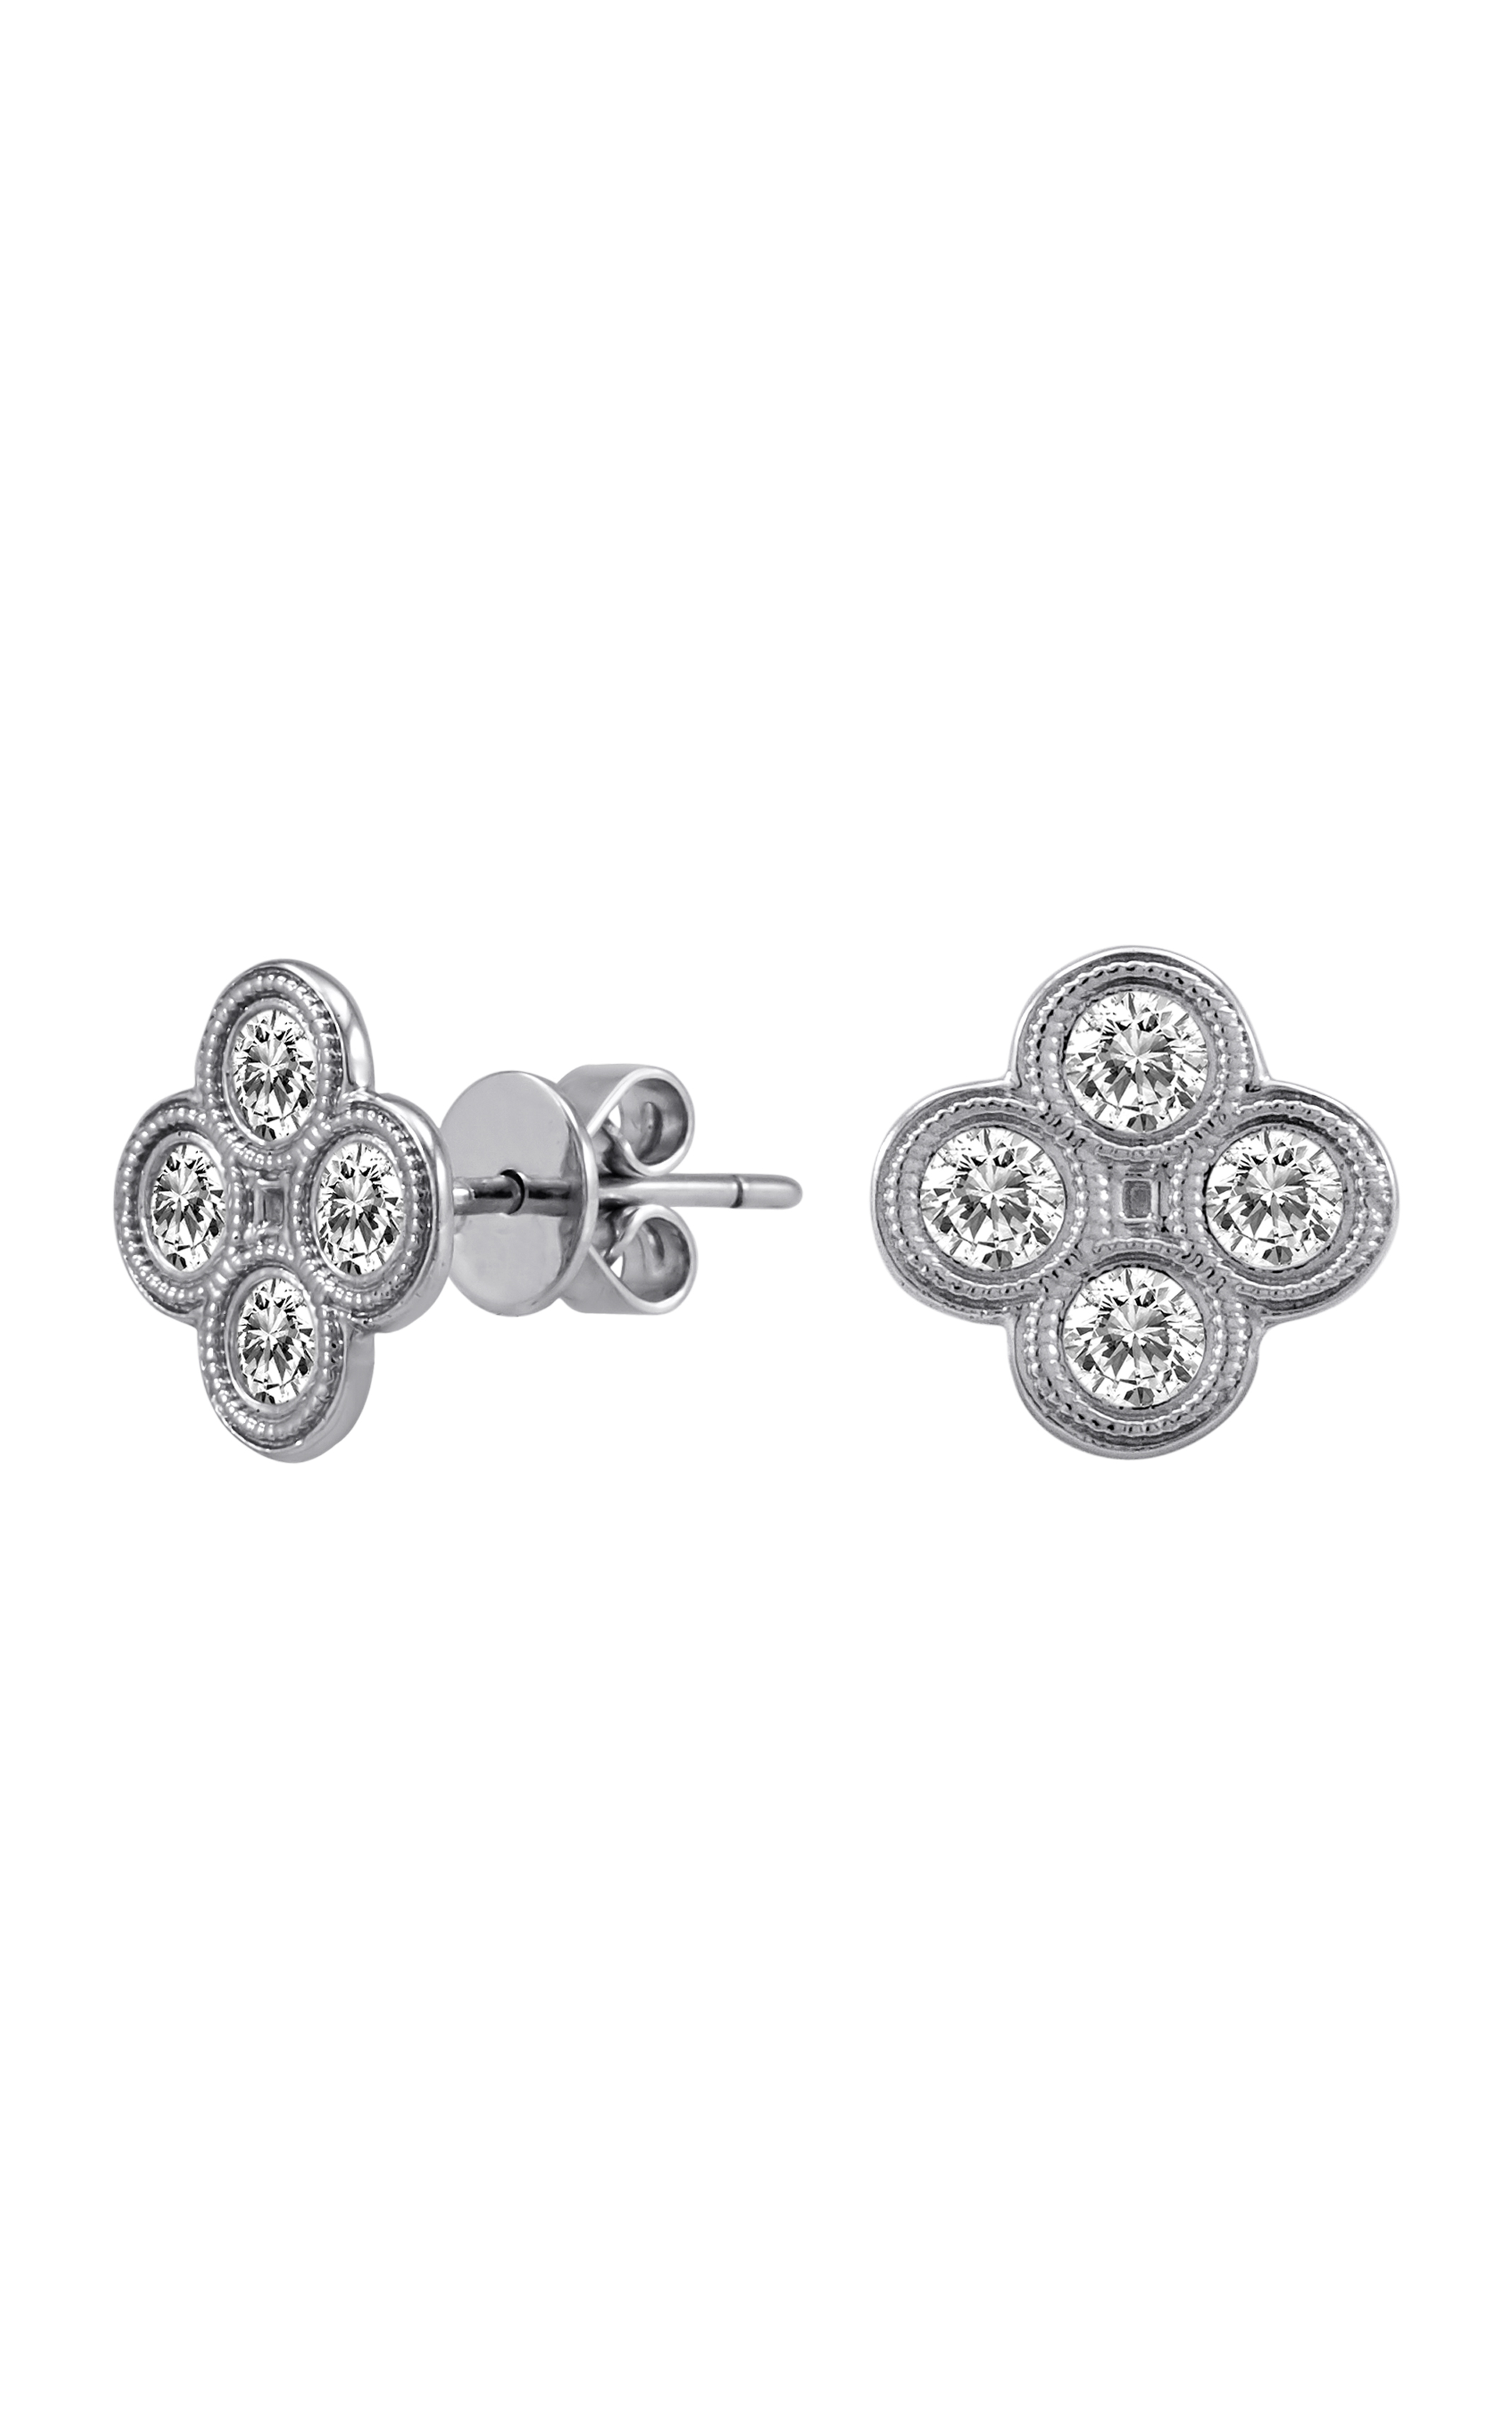 Beny Sofer Earrings Earring SE11-178C product image